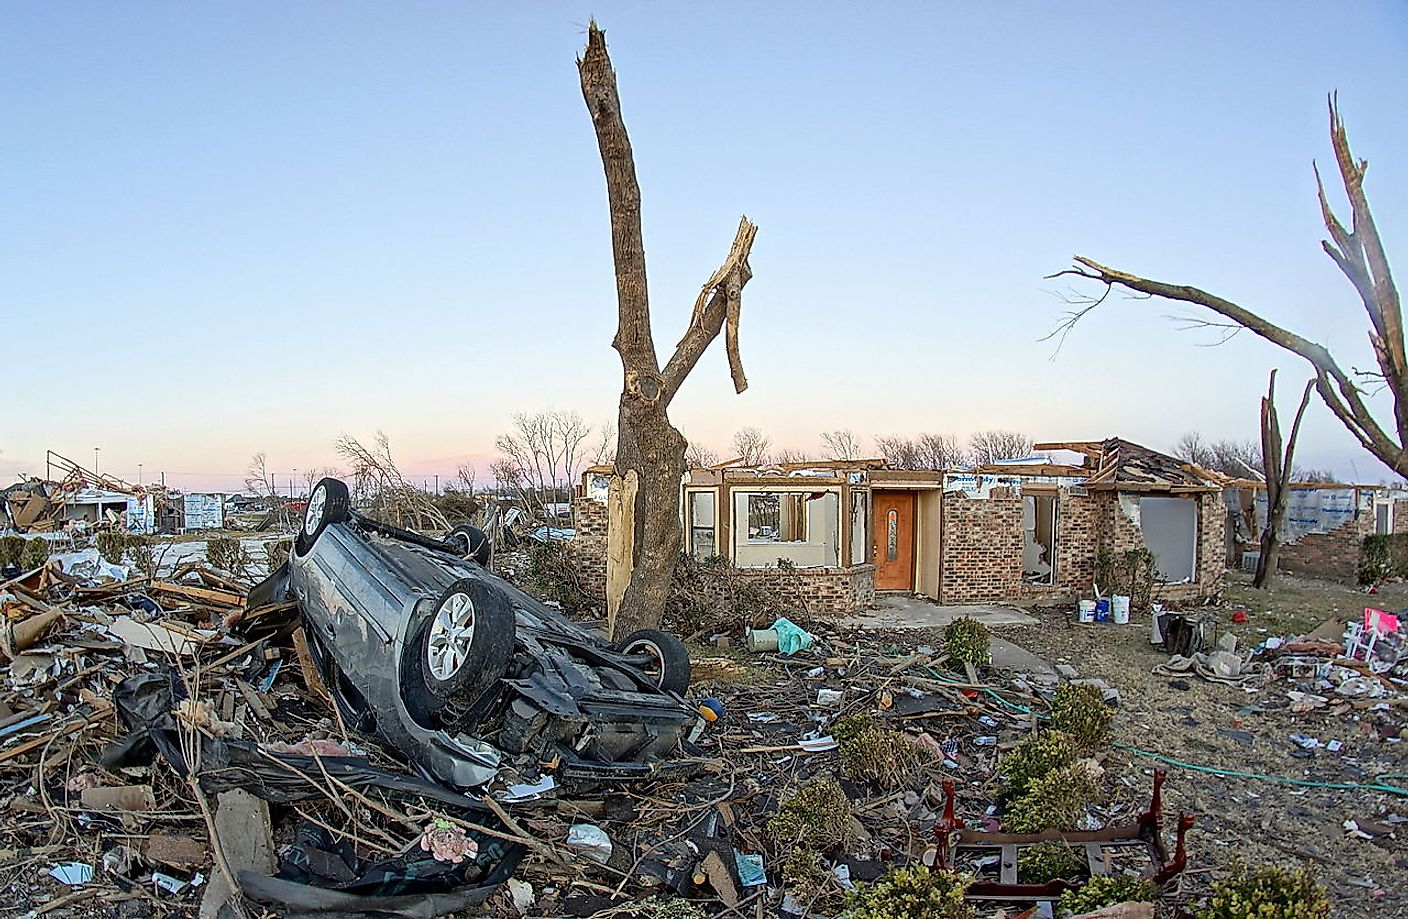 Damage in a residential area as a result of the EF4 Garland/Rowlett, Texas tornado. Image credit: Volkan Yukse/Wikimedia.org